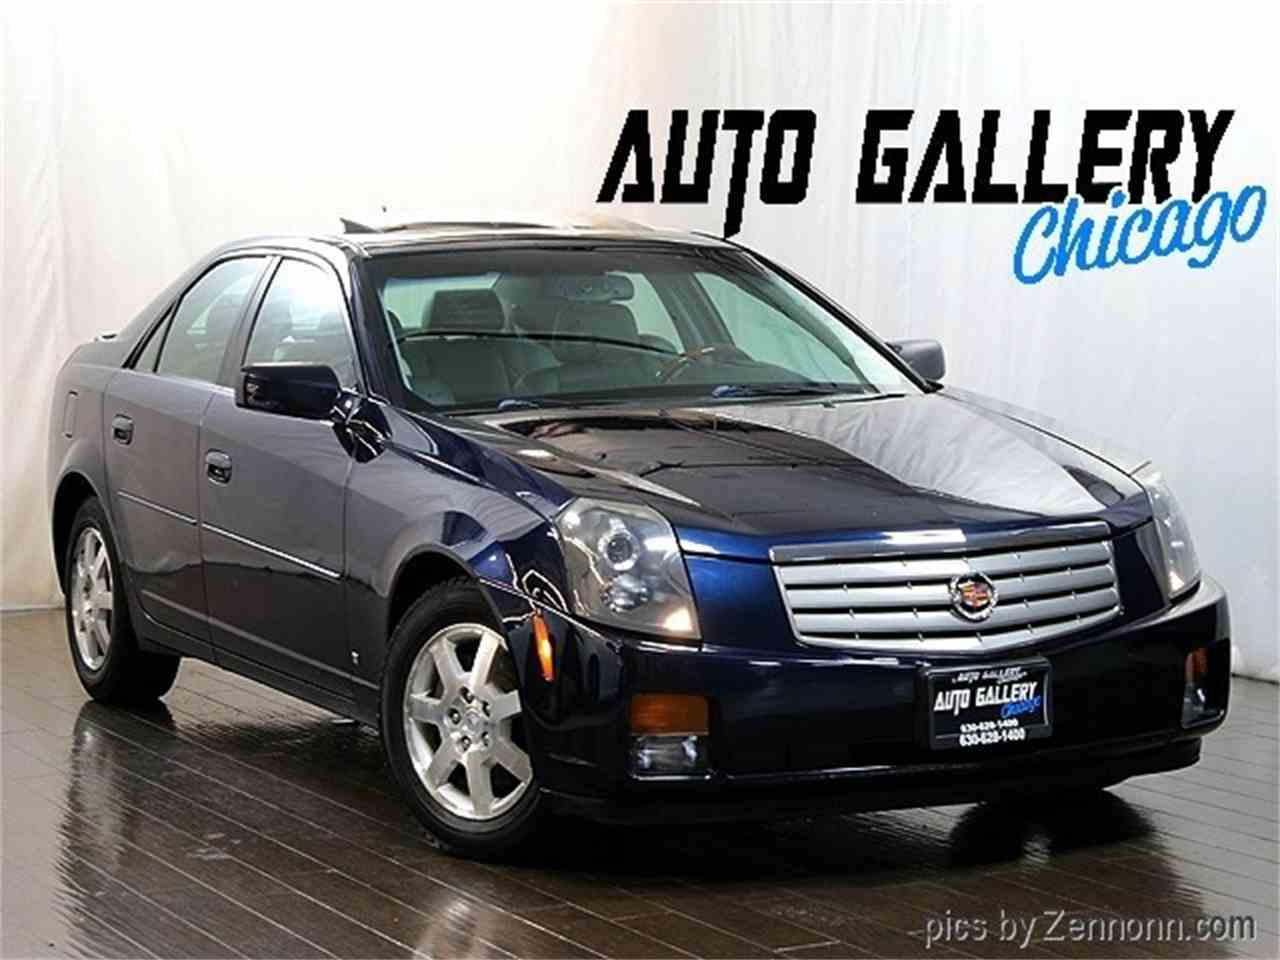 sale srx for on recalled cts issues cadillac stop strongauto